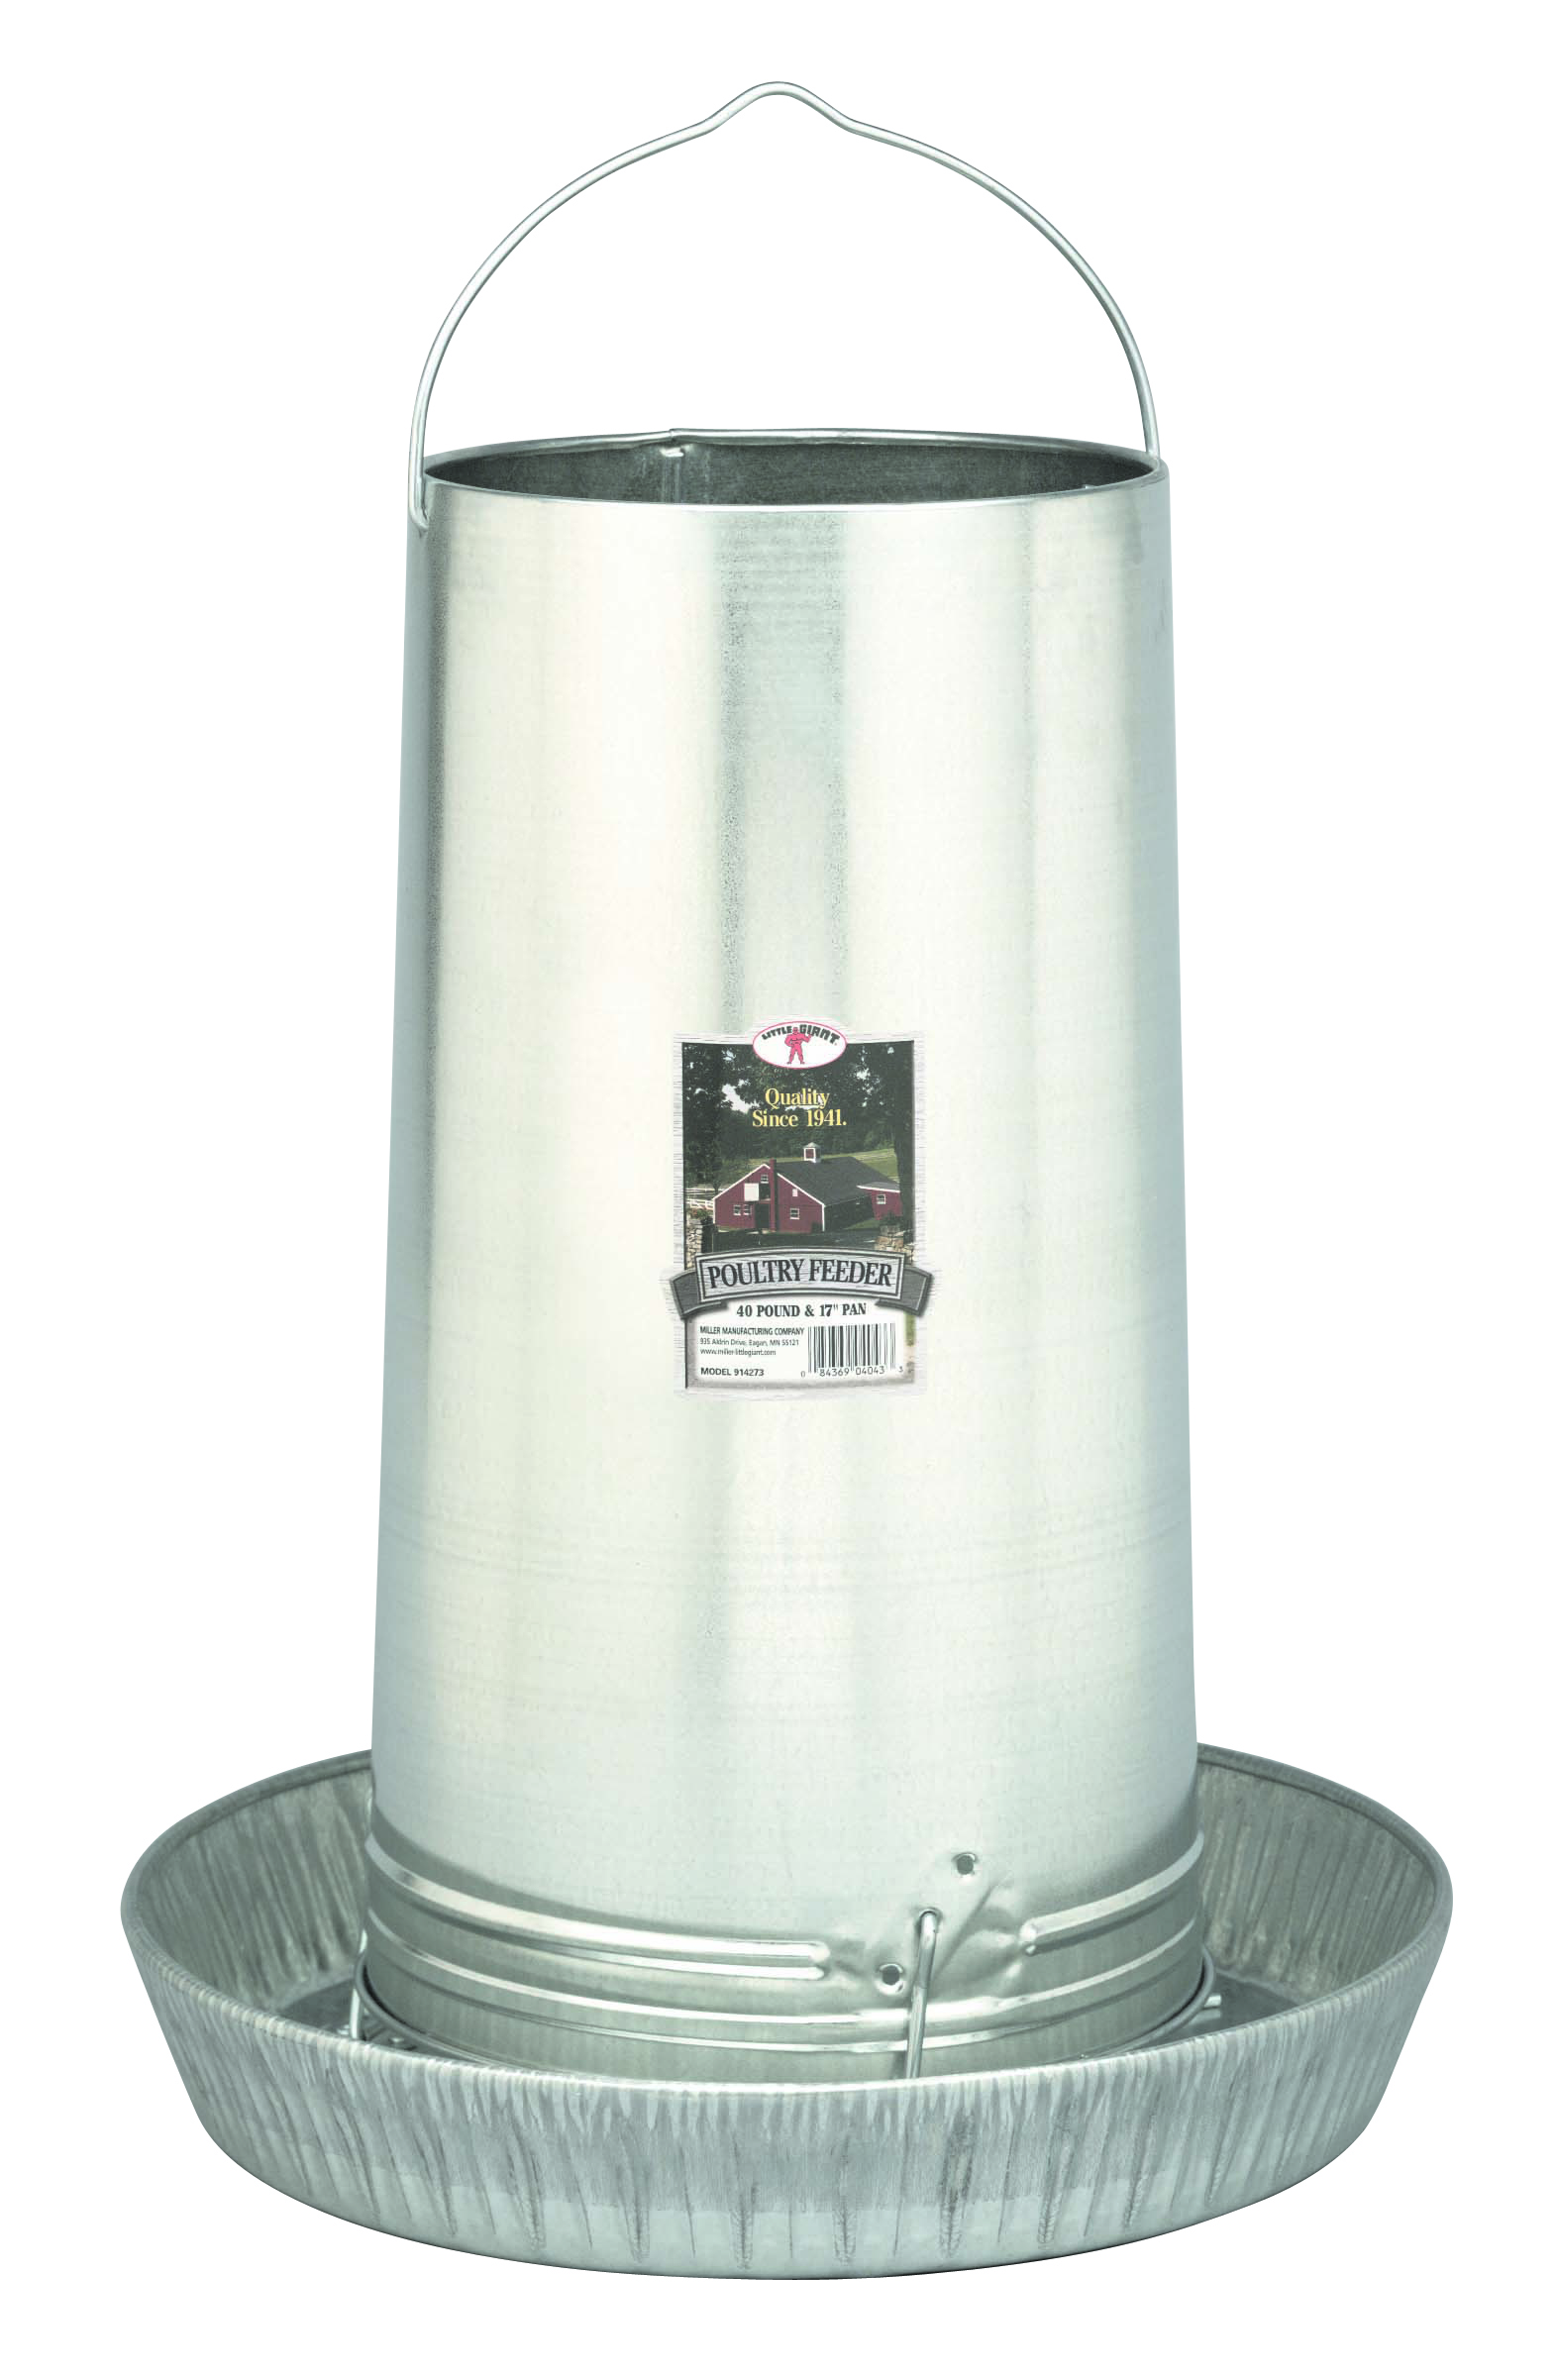 Miller-mfg com 40-Pound Hanging Metal Poultry Feeder - 914273